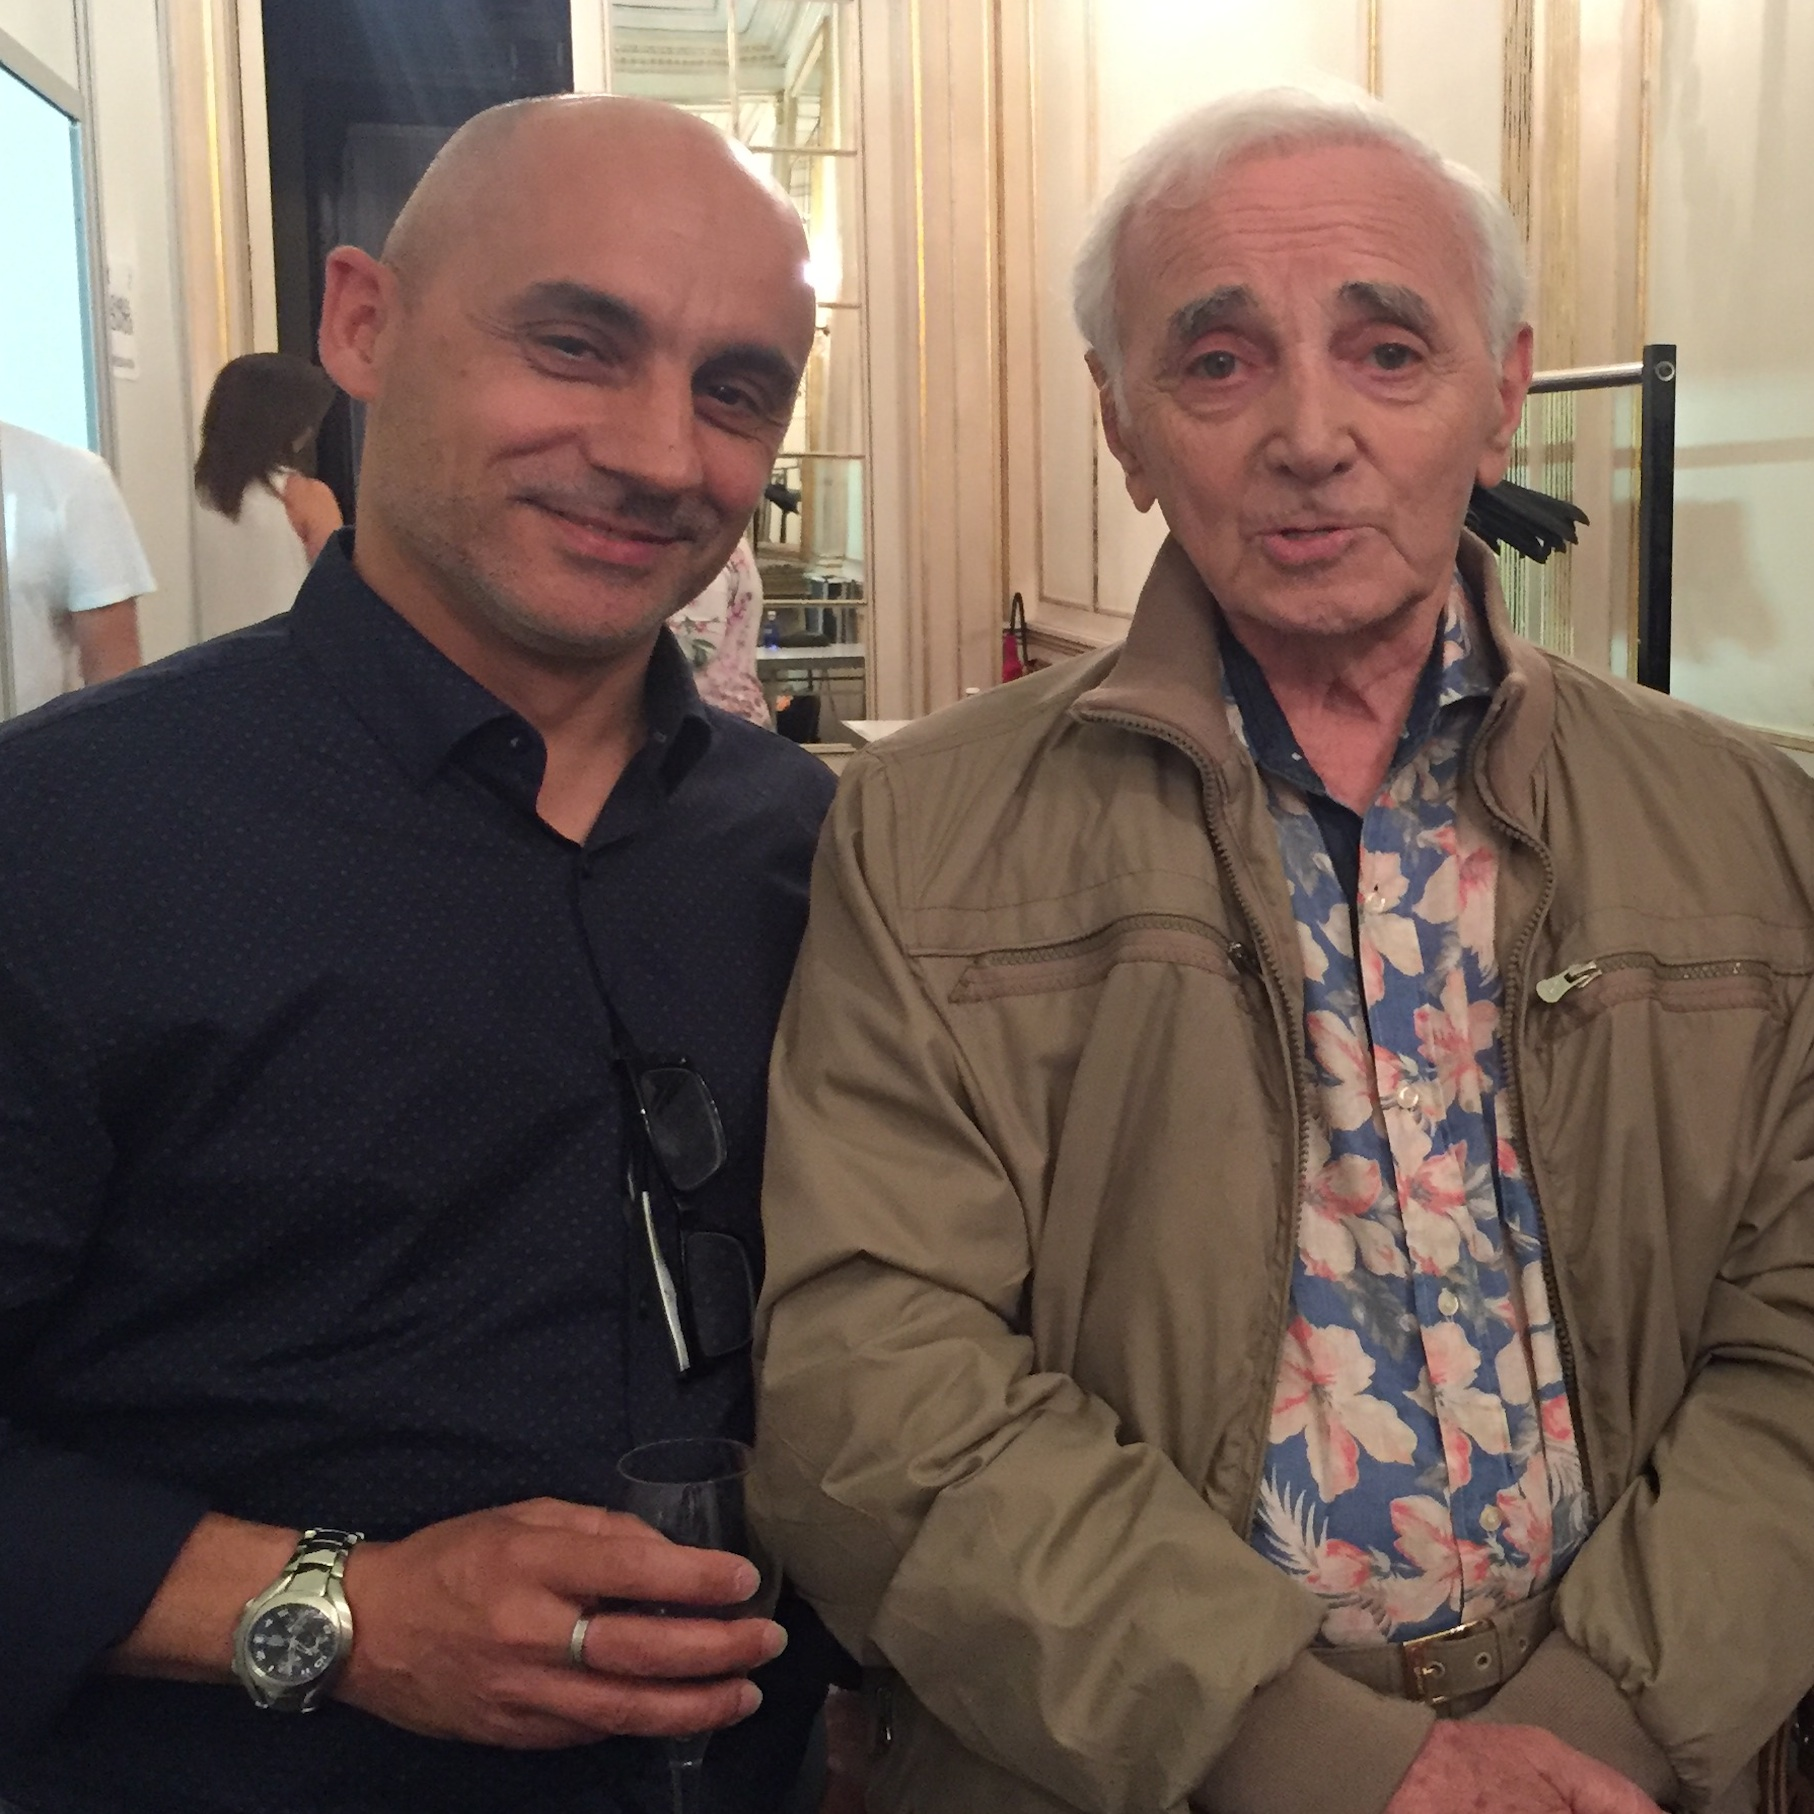 Meeting Charles Aznavour